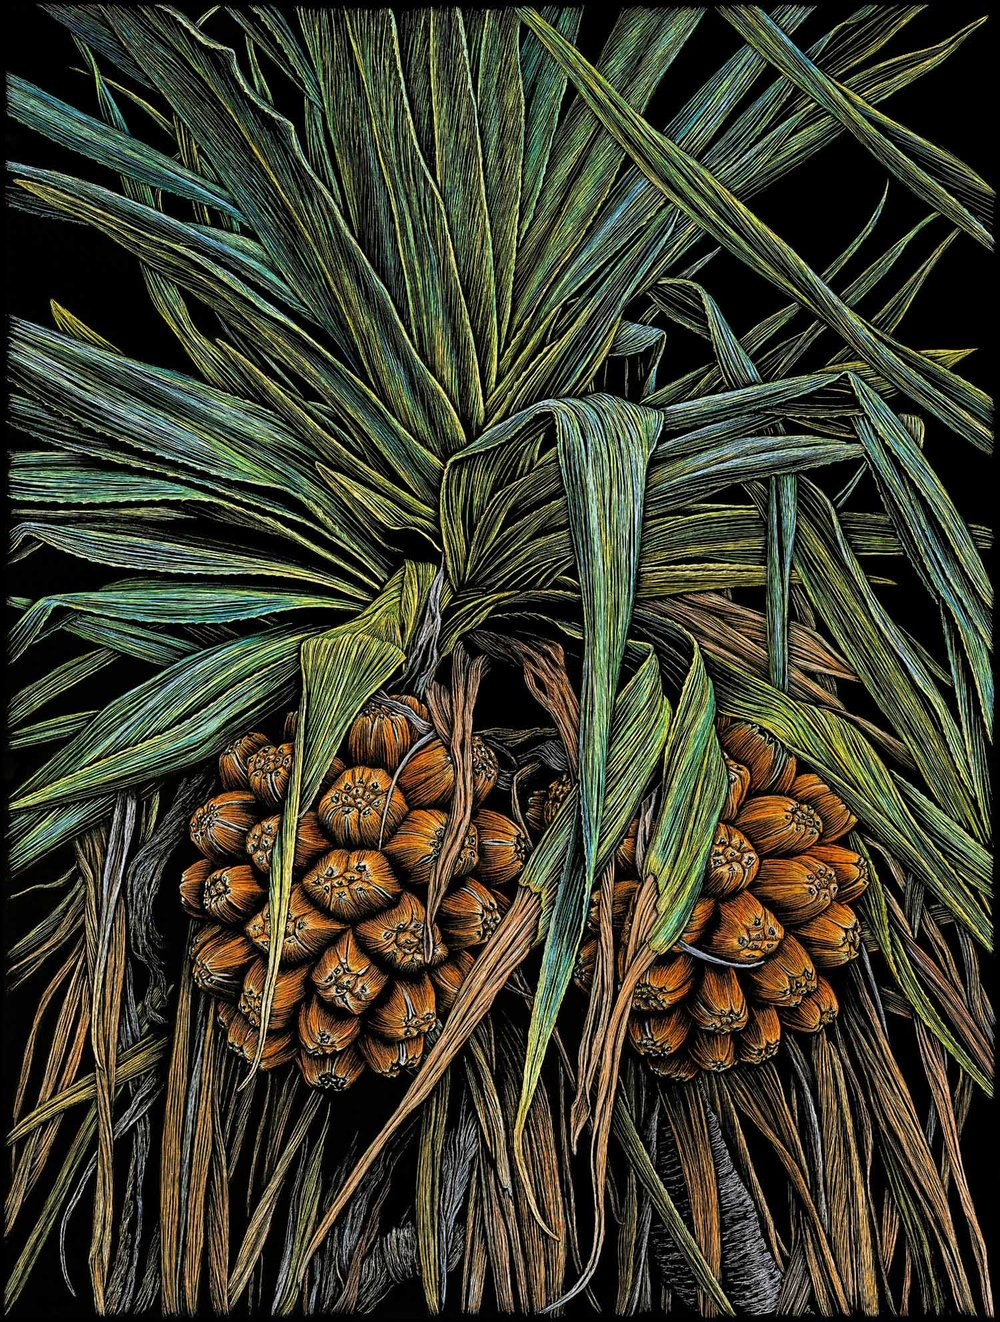 pandanus-palm-beach-colour-engraving-rachel-newling.jpg